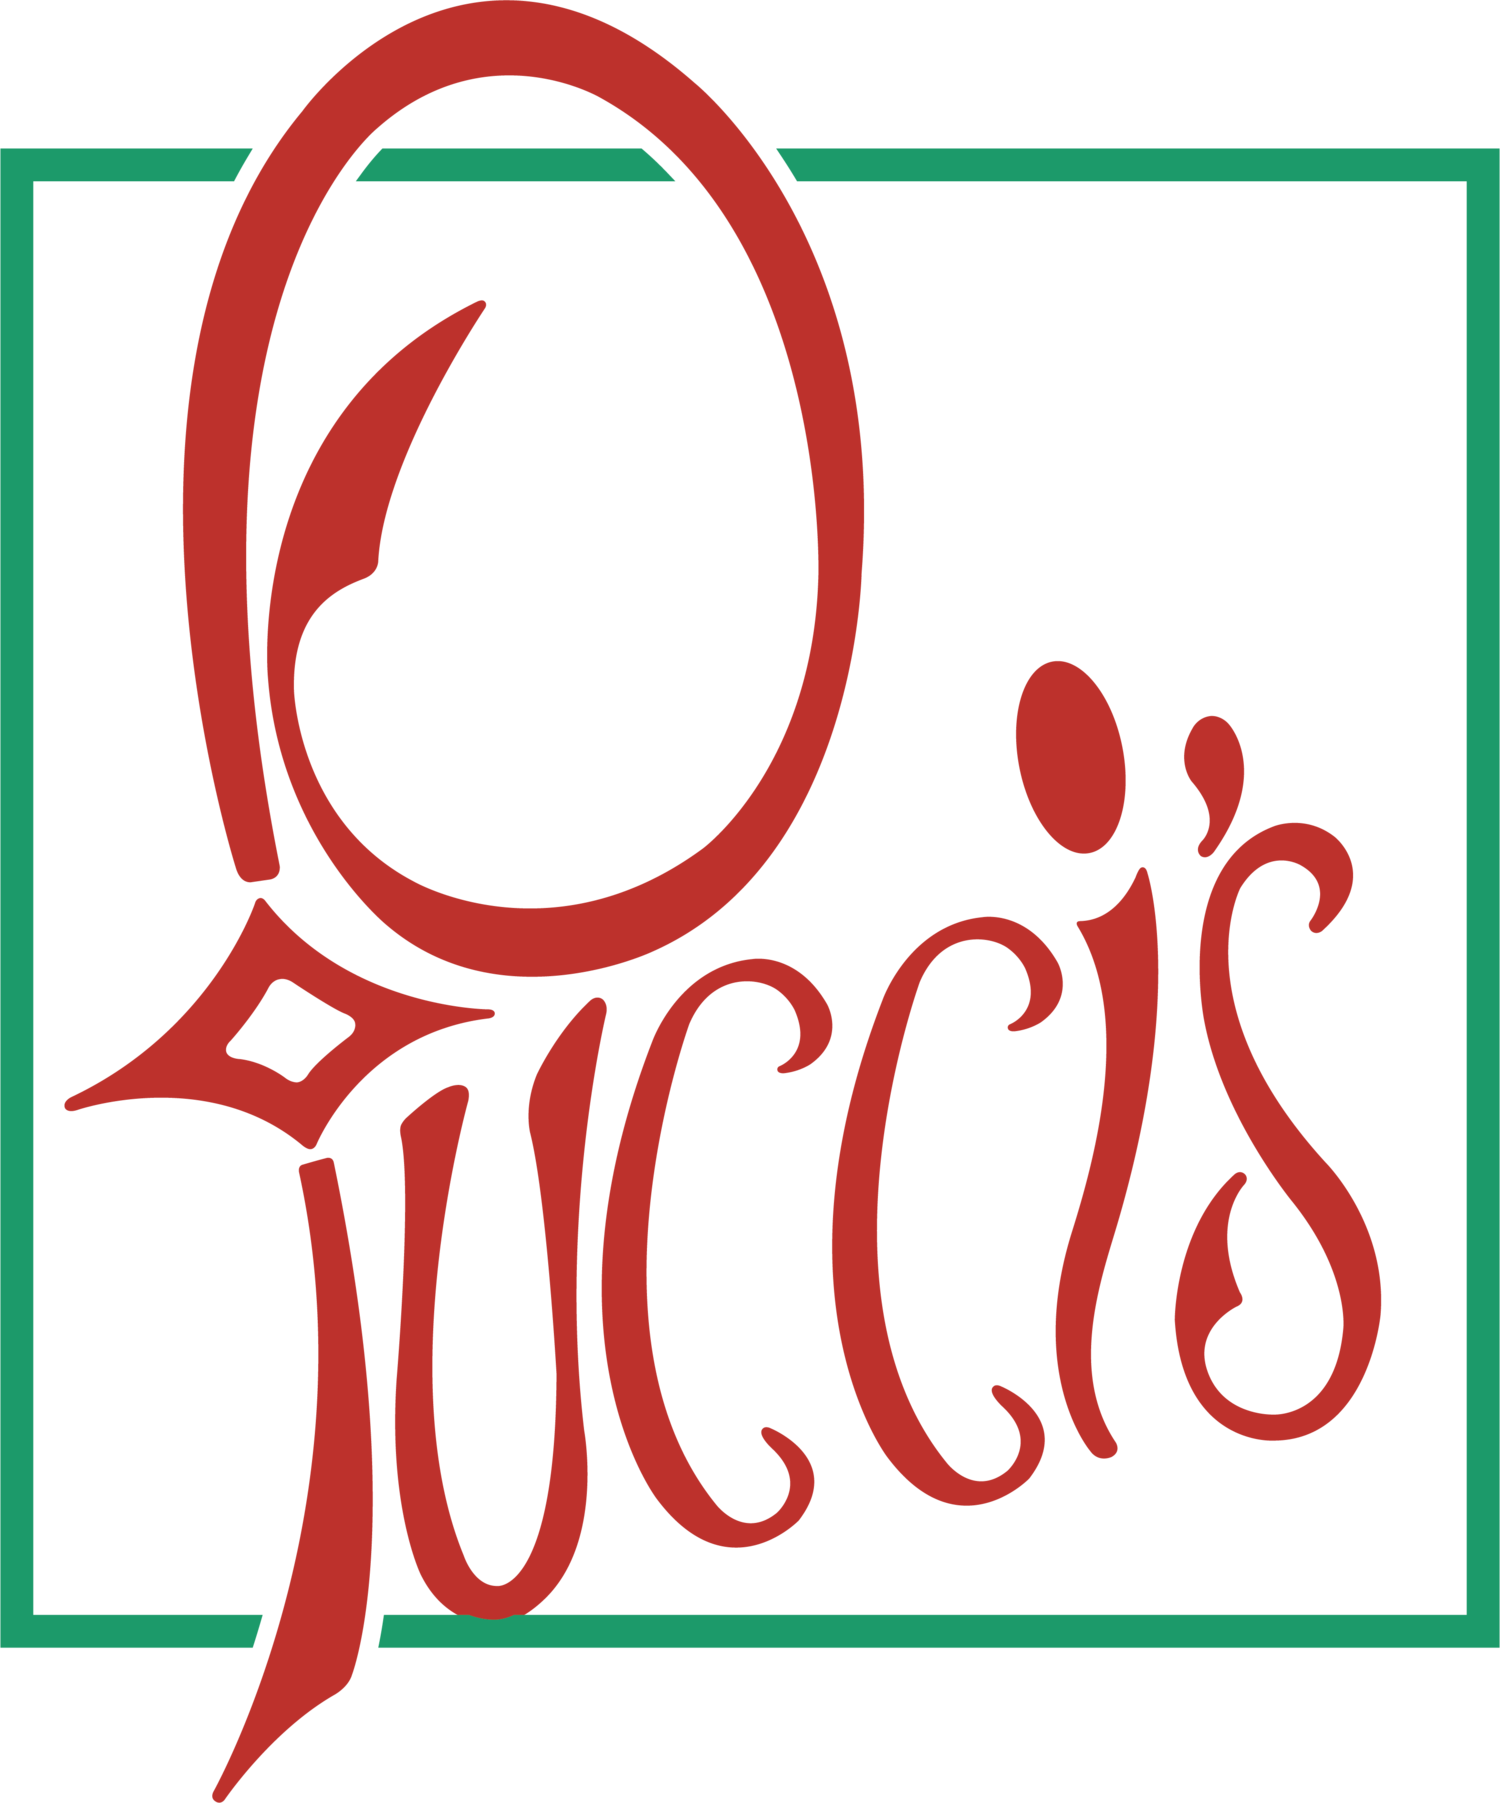 Pucci's Restaurant and Pizzeria